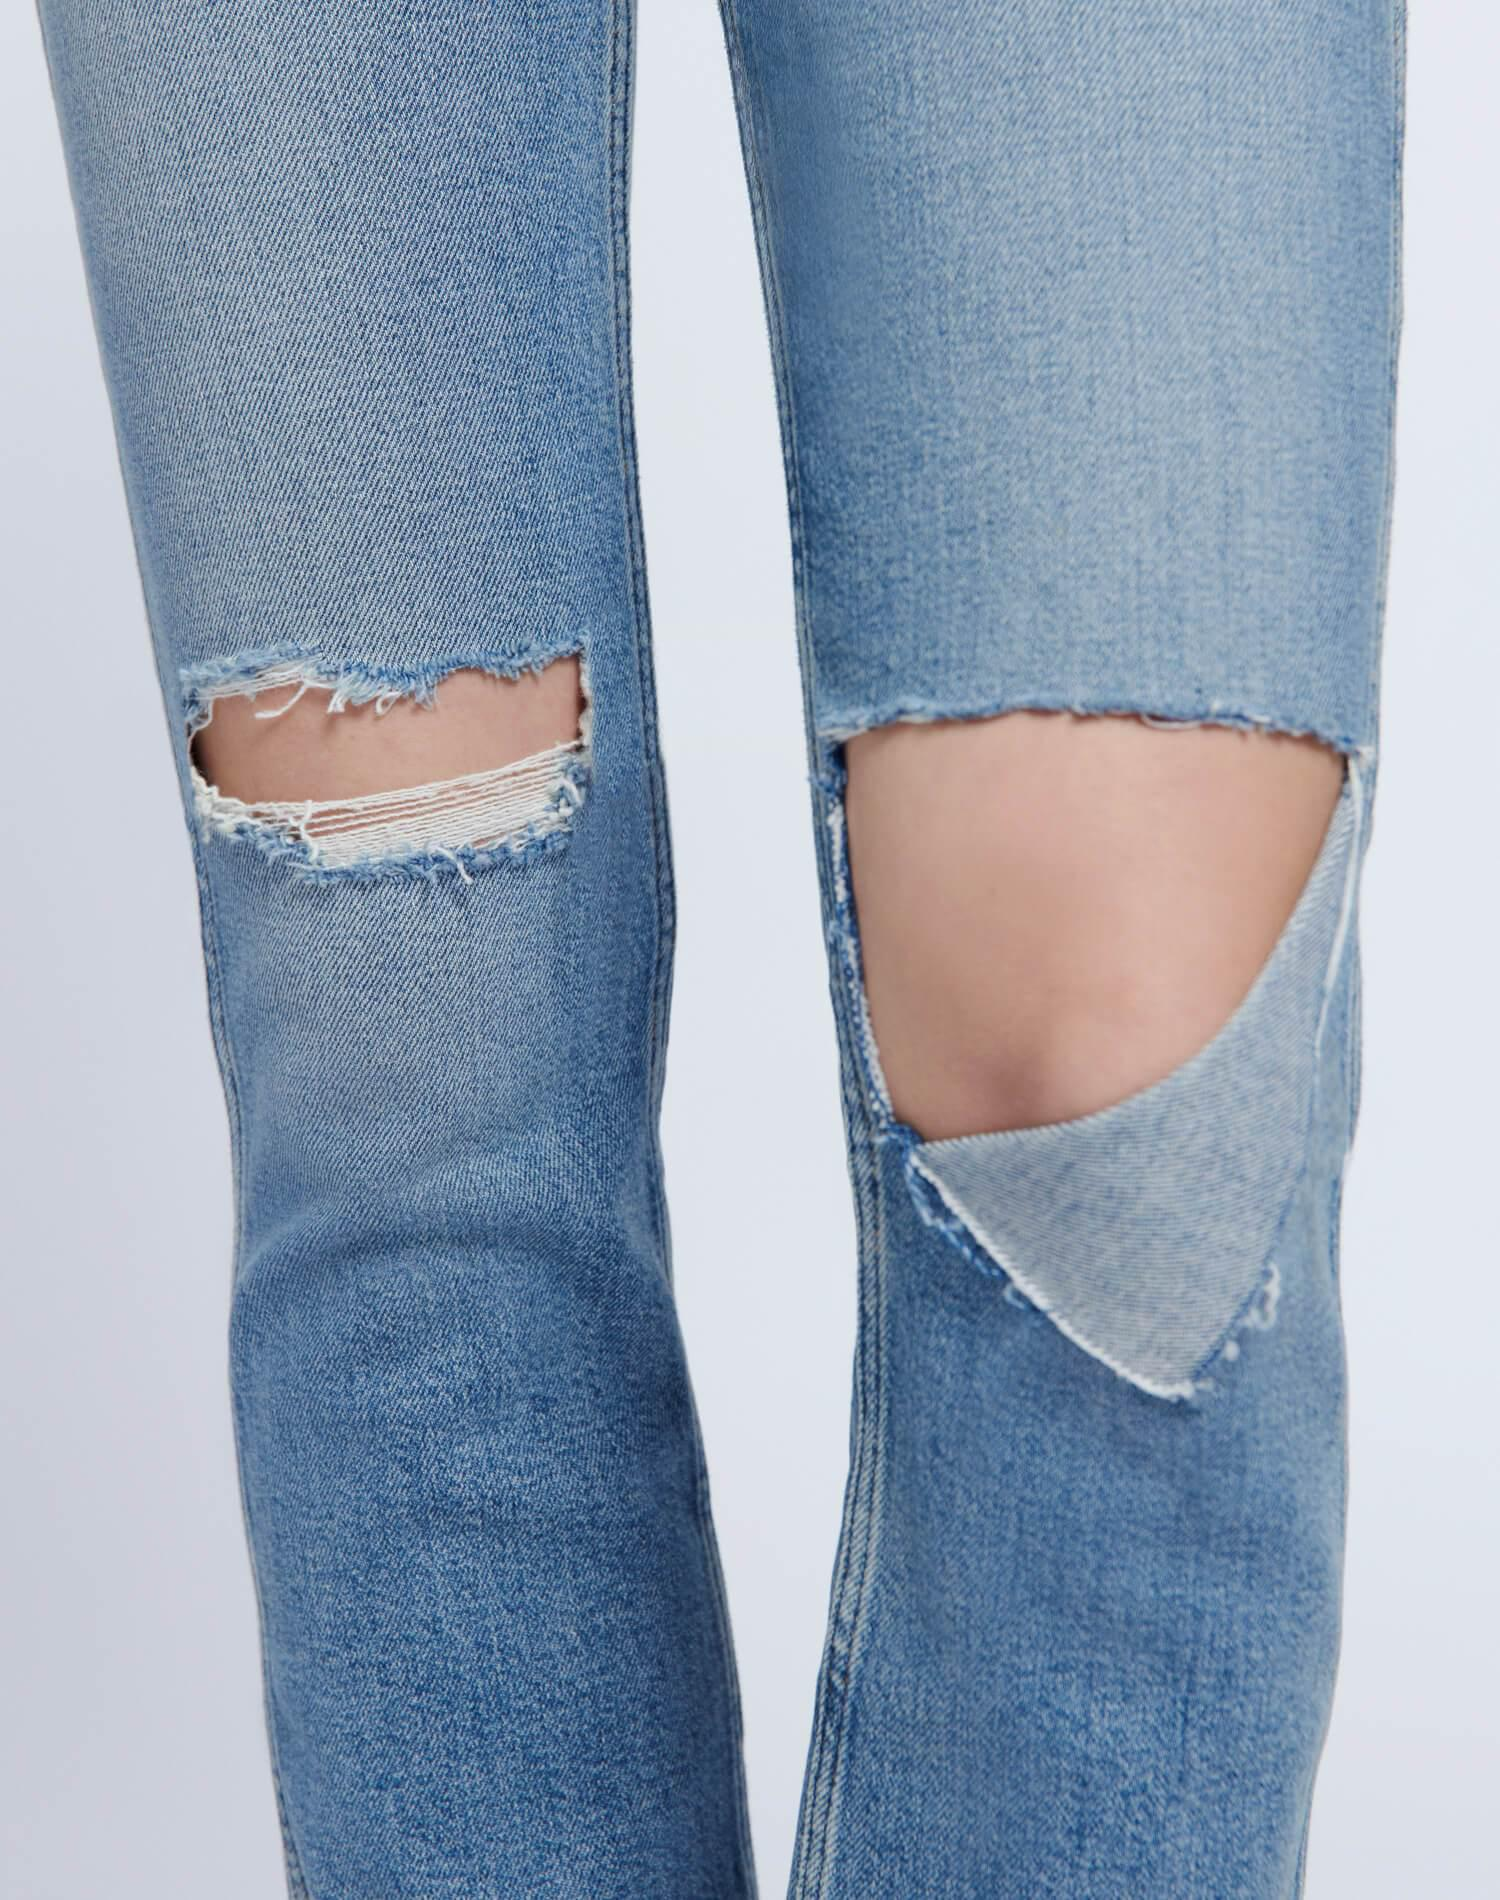 80s Comfort Stretch Slim Straight - Brisk Blue with Rips 4